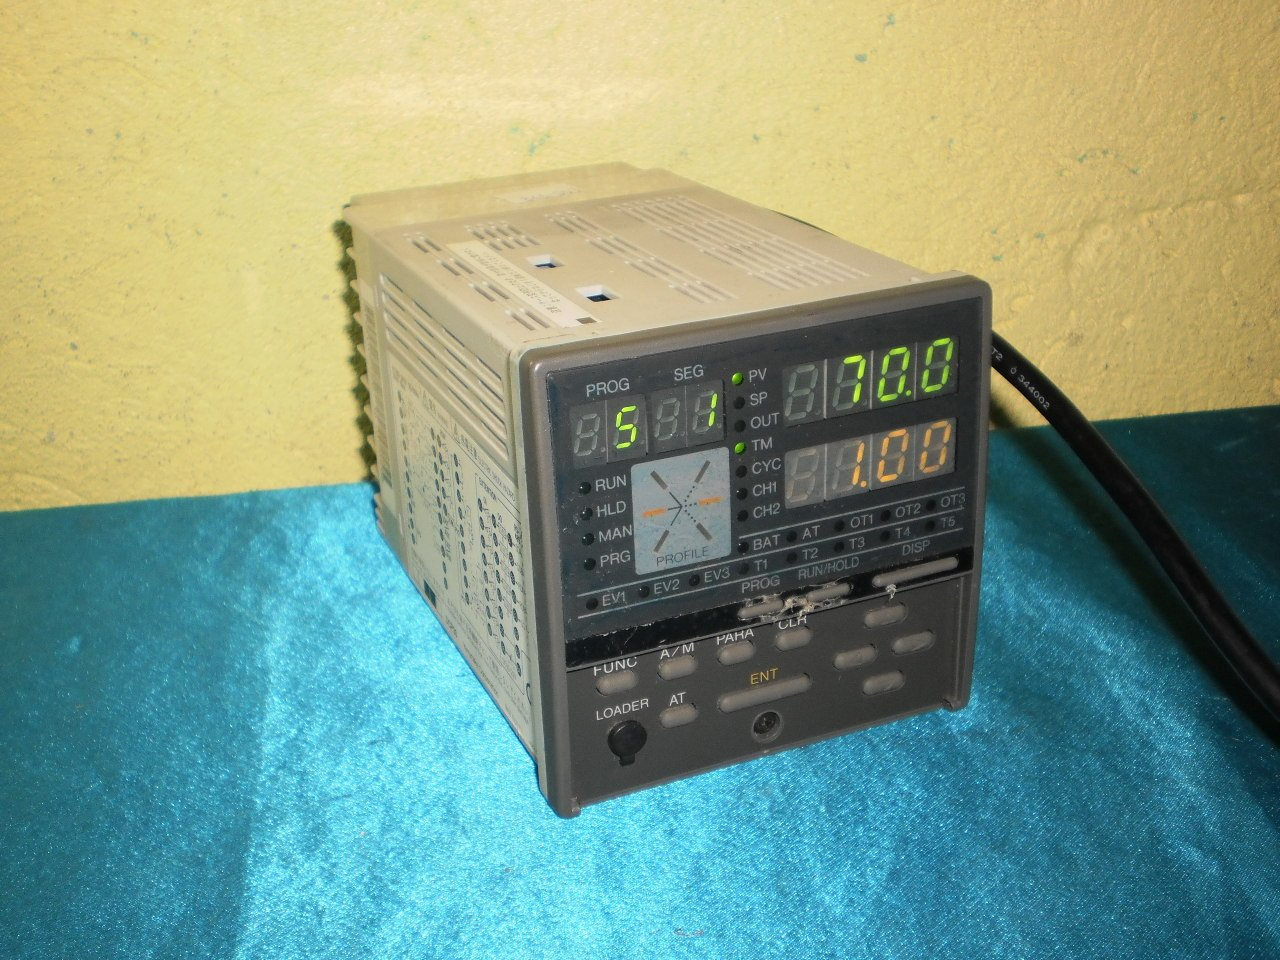 omron temperature controller wiring diagram electron dot worksheet with answers yamatake honeywell dcp30